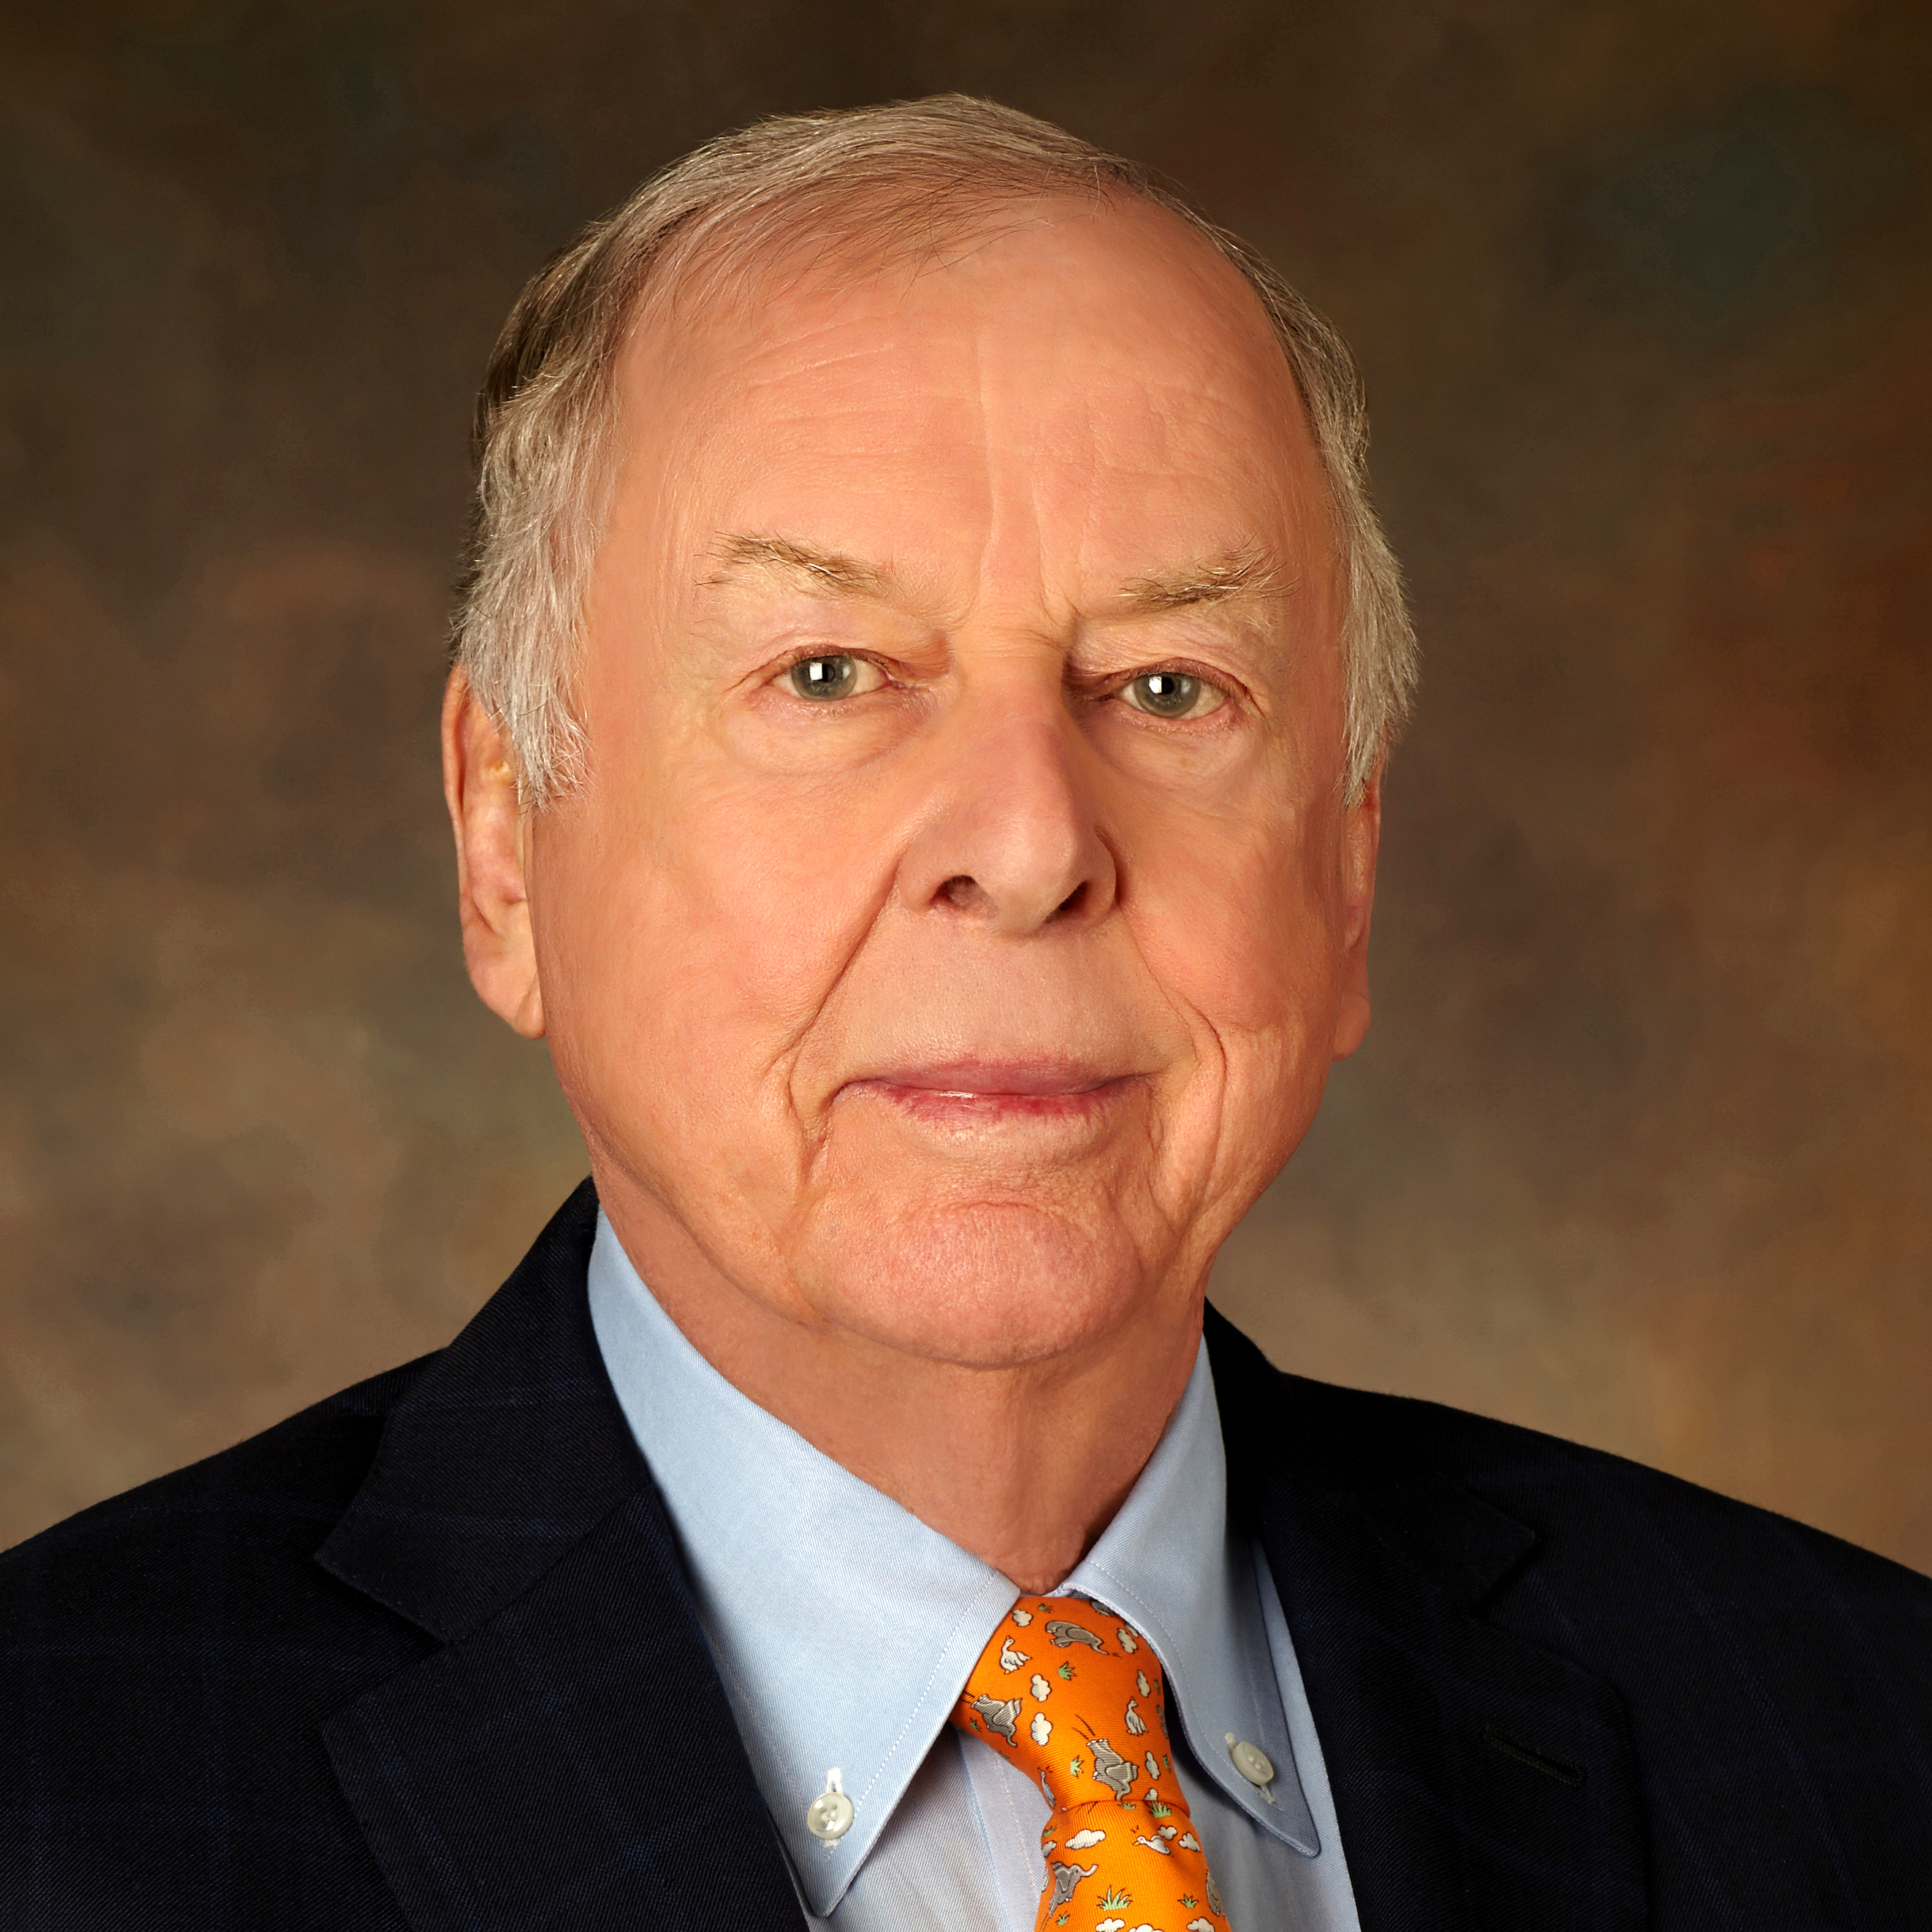 T. Boone Pickens, founder of Mesa Petroleum